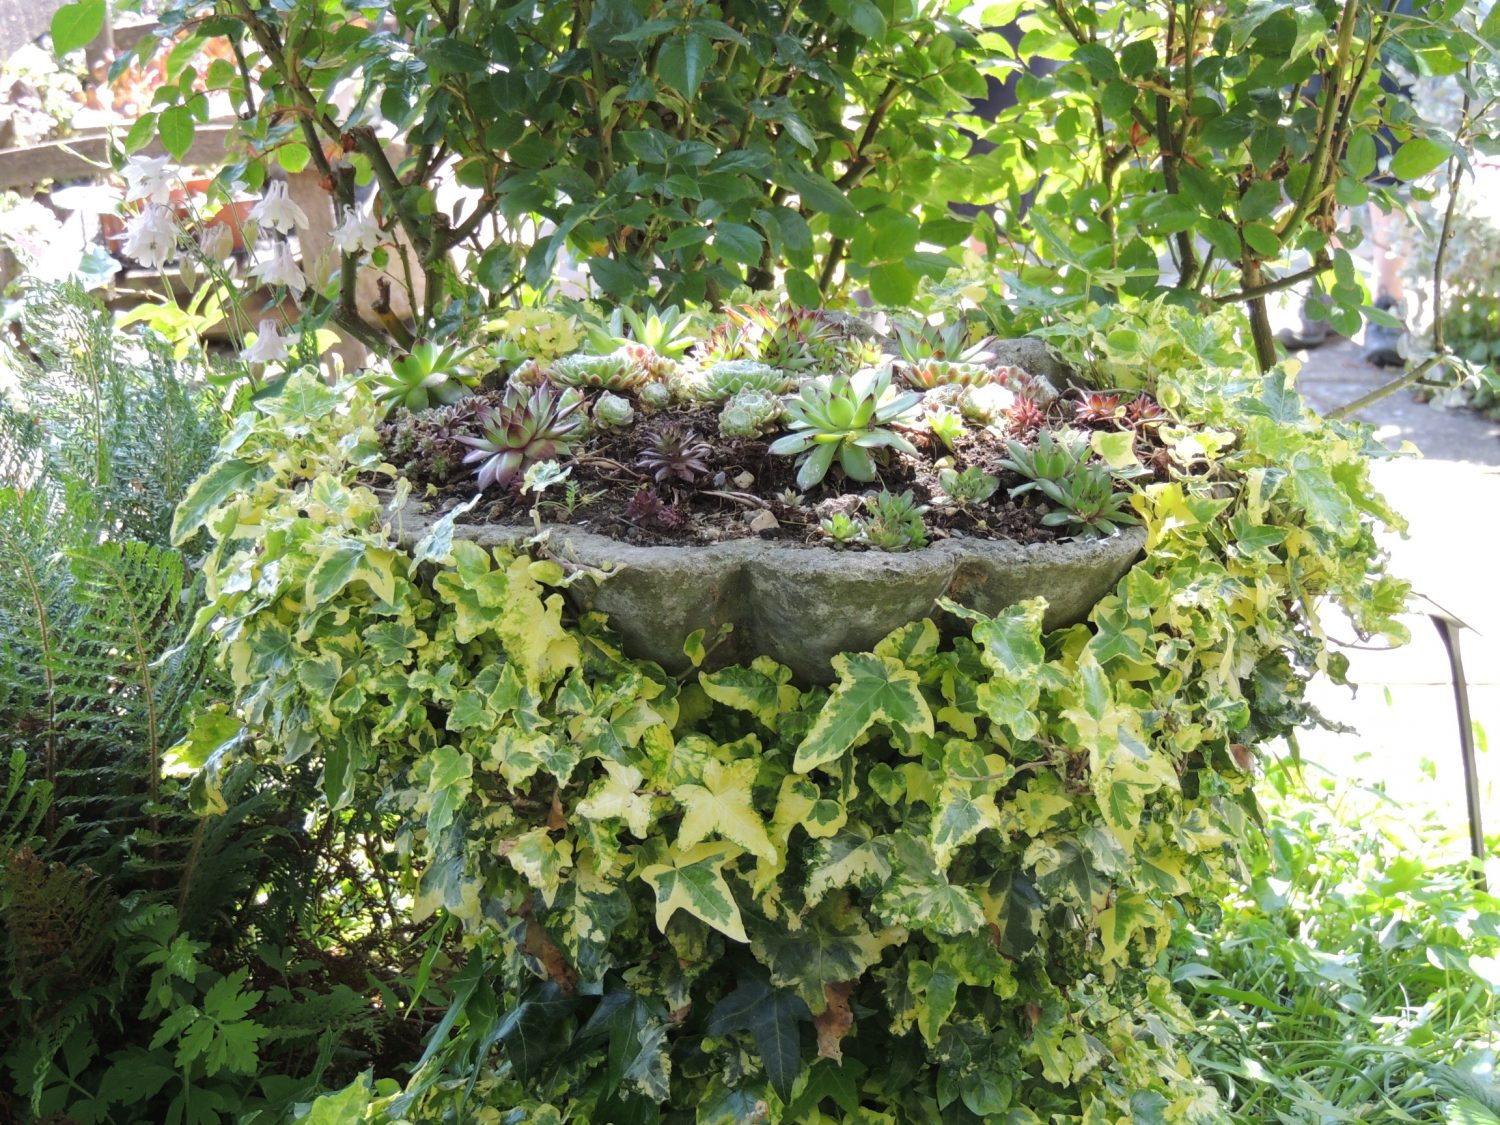 Variegated ivy snakes around a stone planter